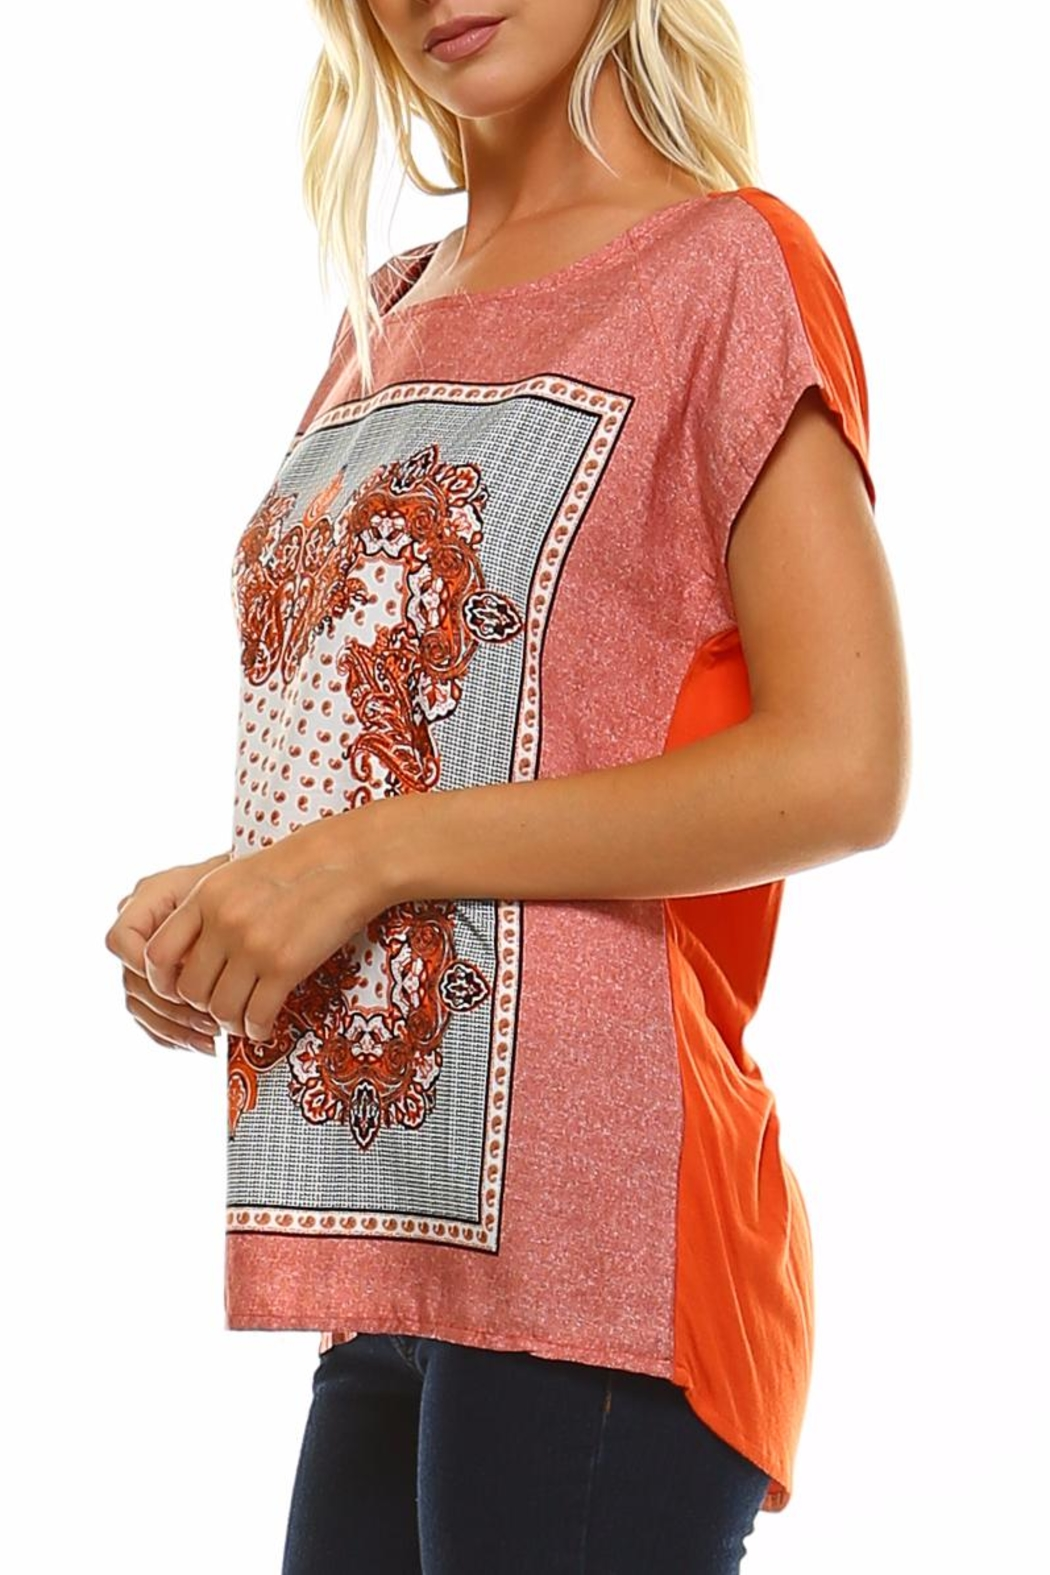 Maison Coupe Printed Woven Top - Back Cropped Image